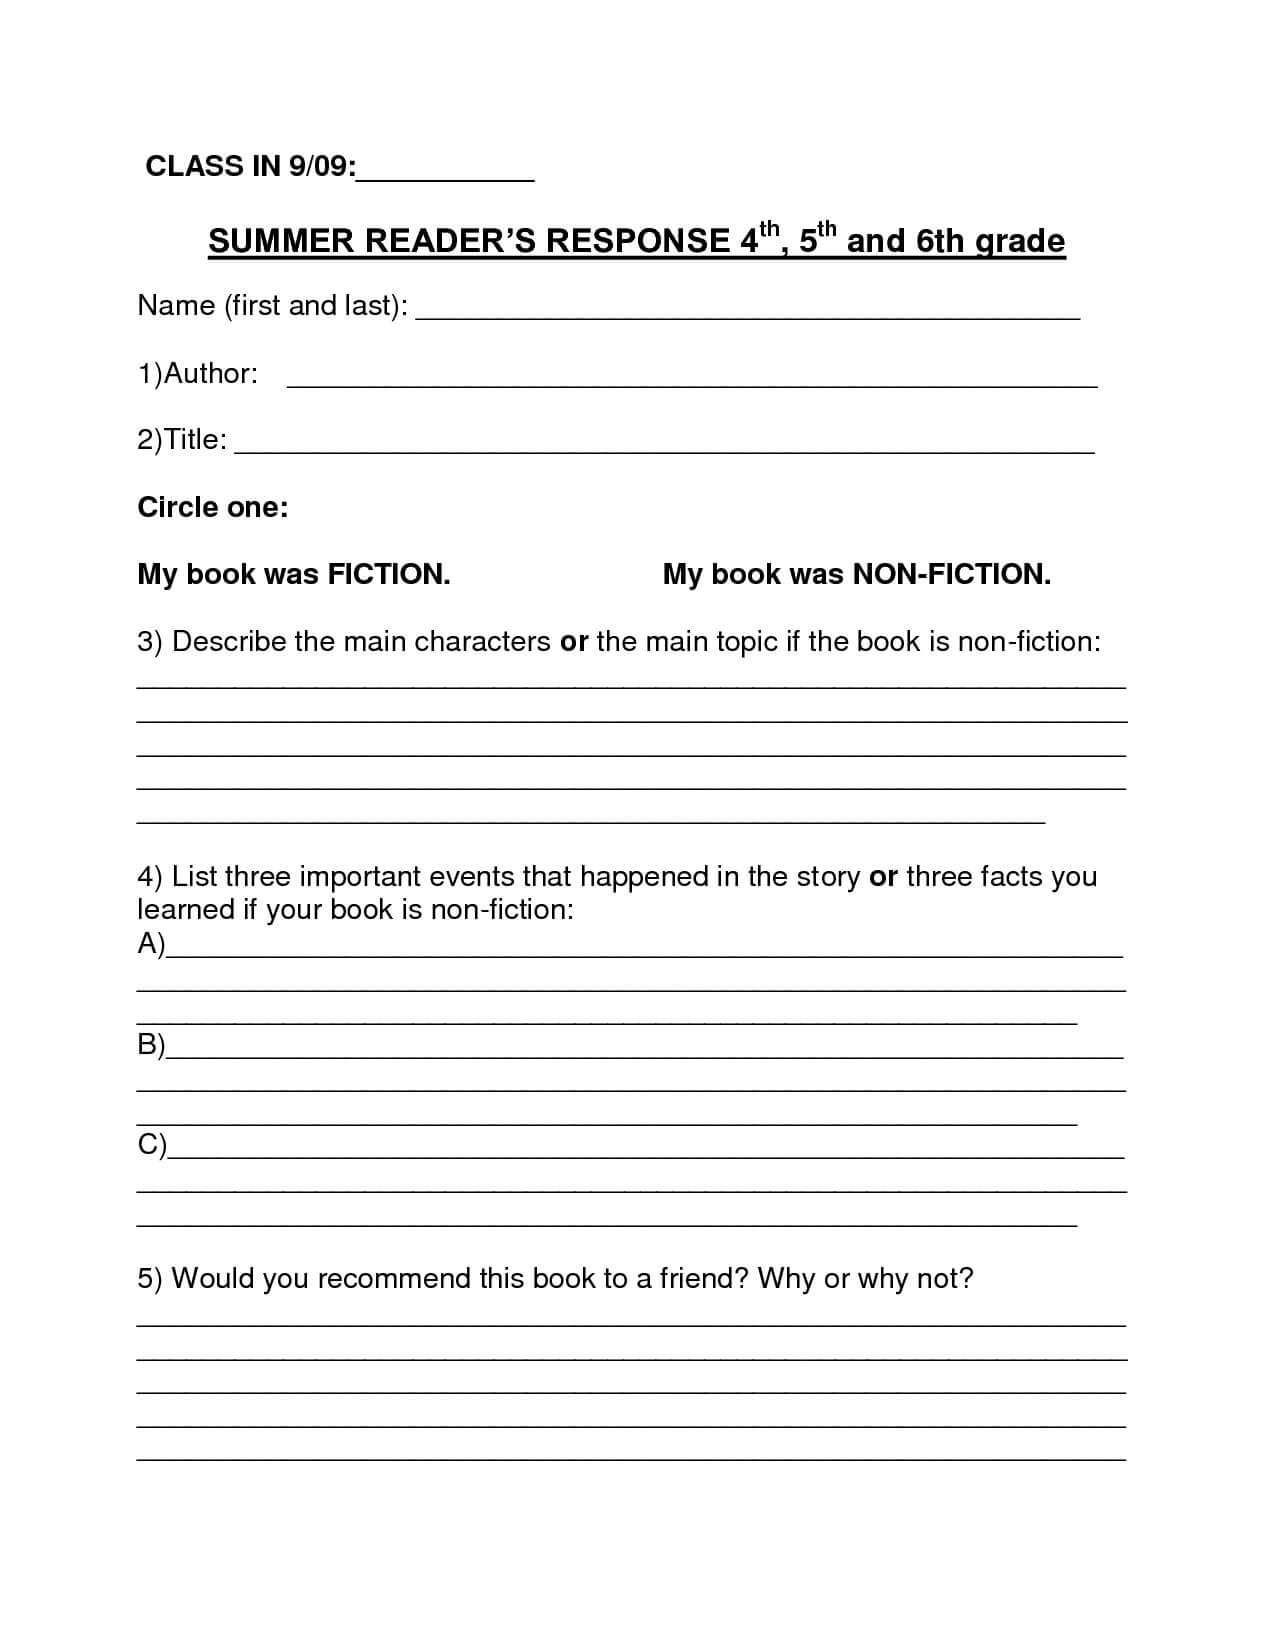 Book Report Template | Summer Book Report 4Th  6Th Grade Within Book Report Template 4Th Grade